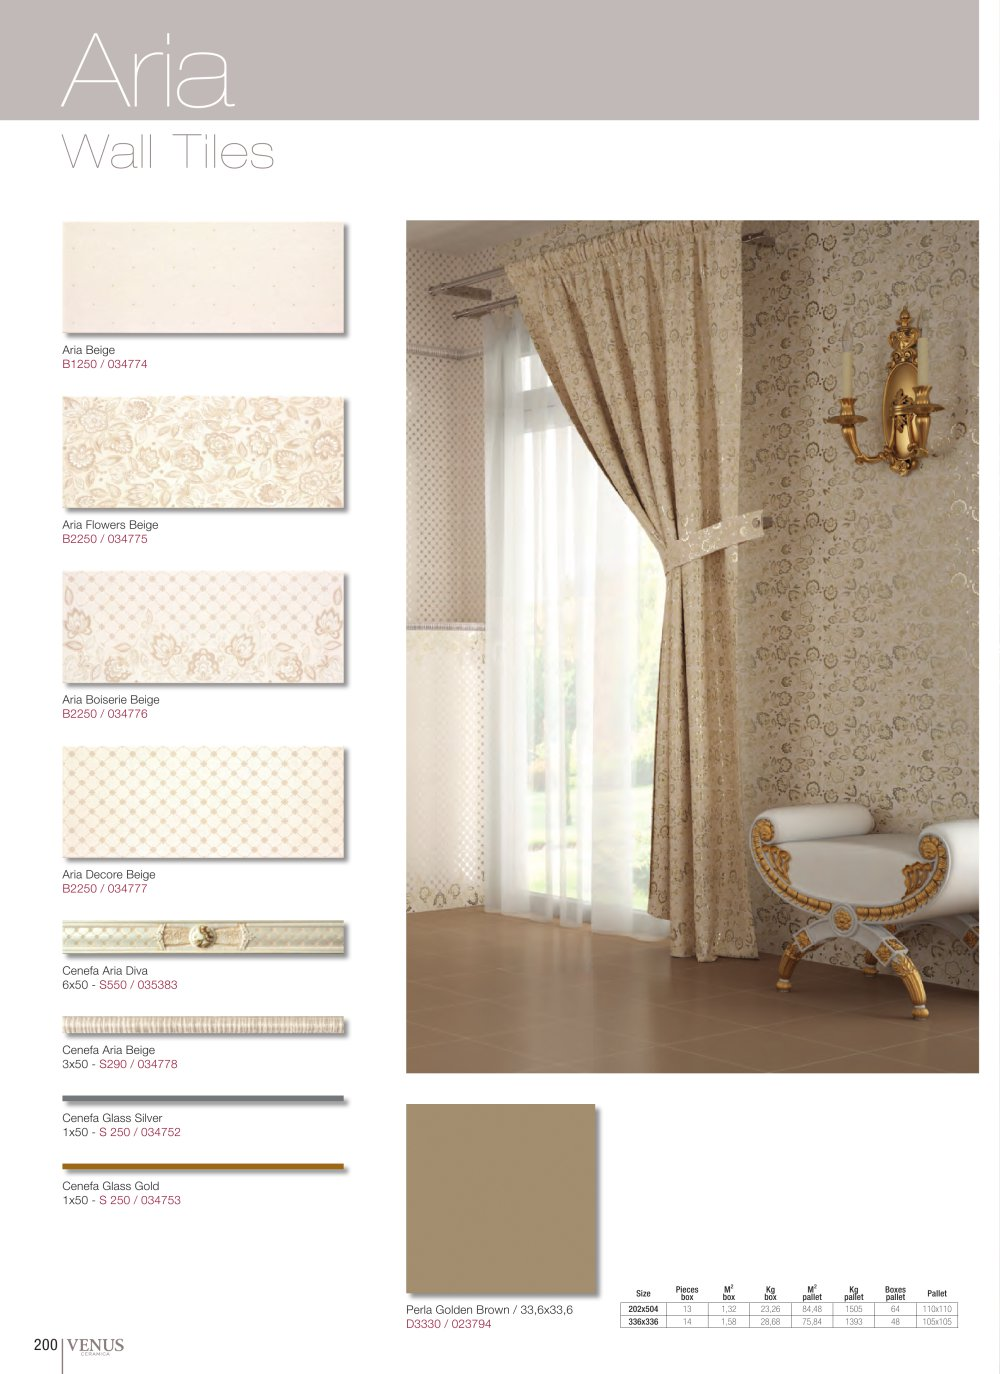 Aria venus ceramica pdf catalogues documentation brochures aria 1 2 pages dailygadgetfo Image collections